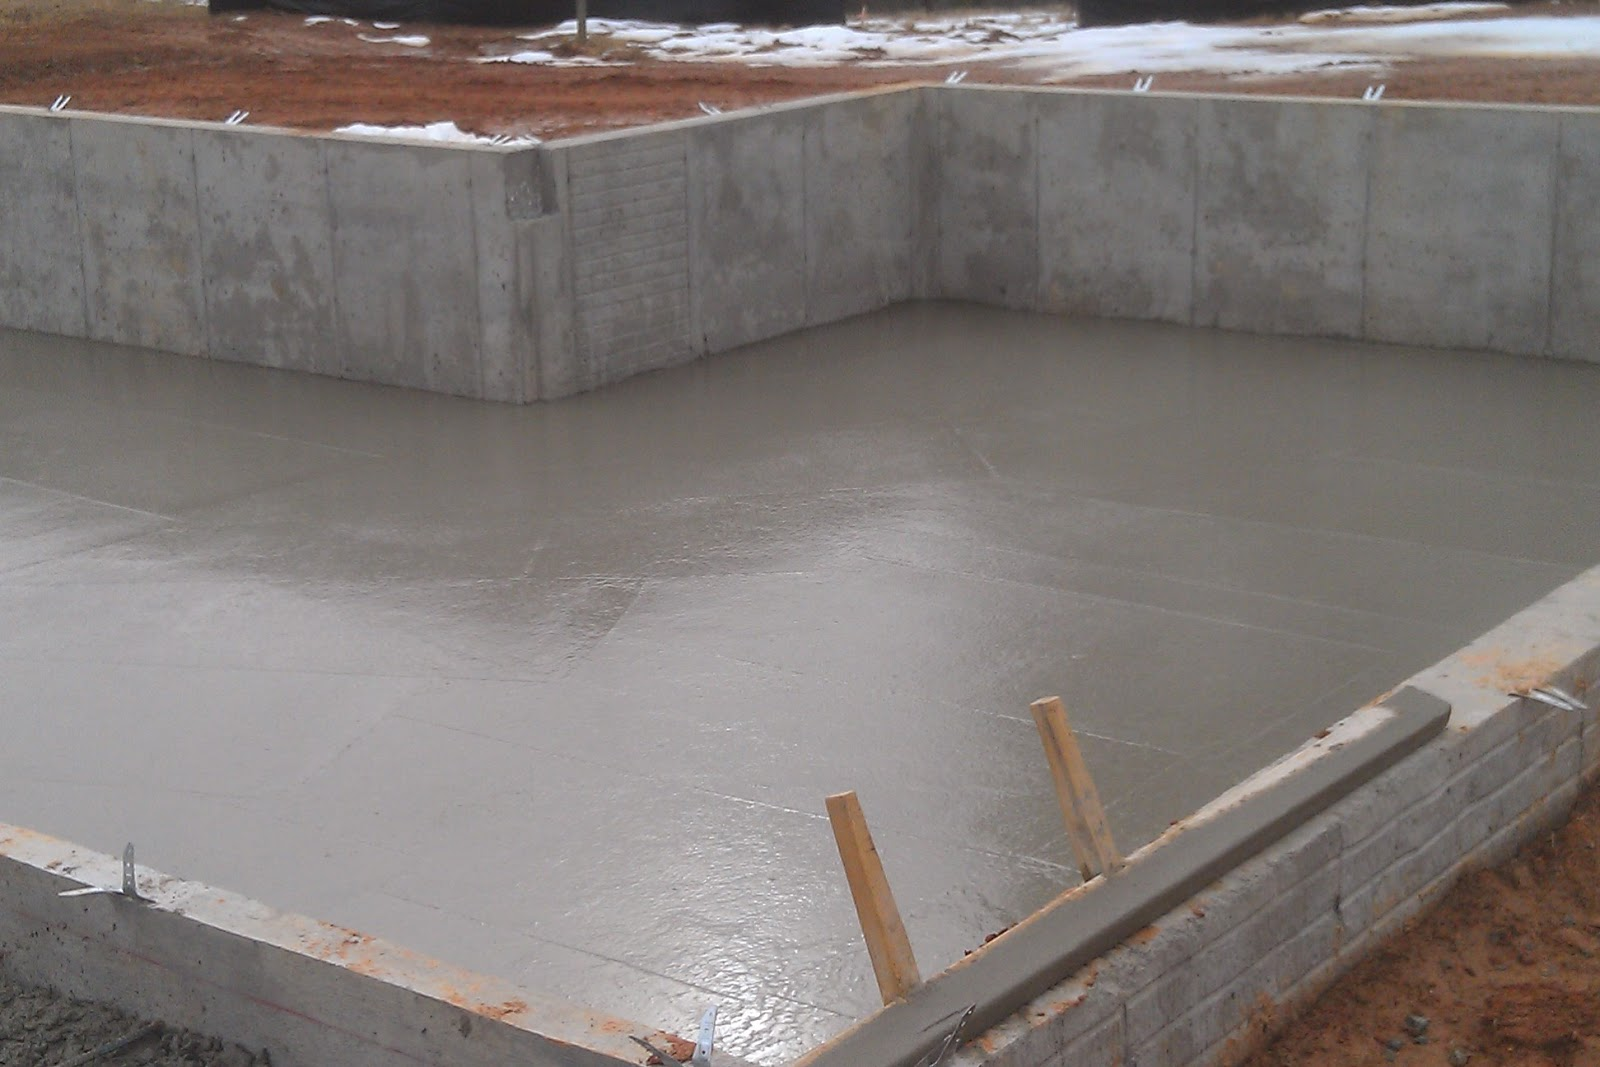 March 11 foundation pouring complete our new home at Crawl space flooring